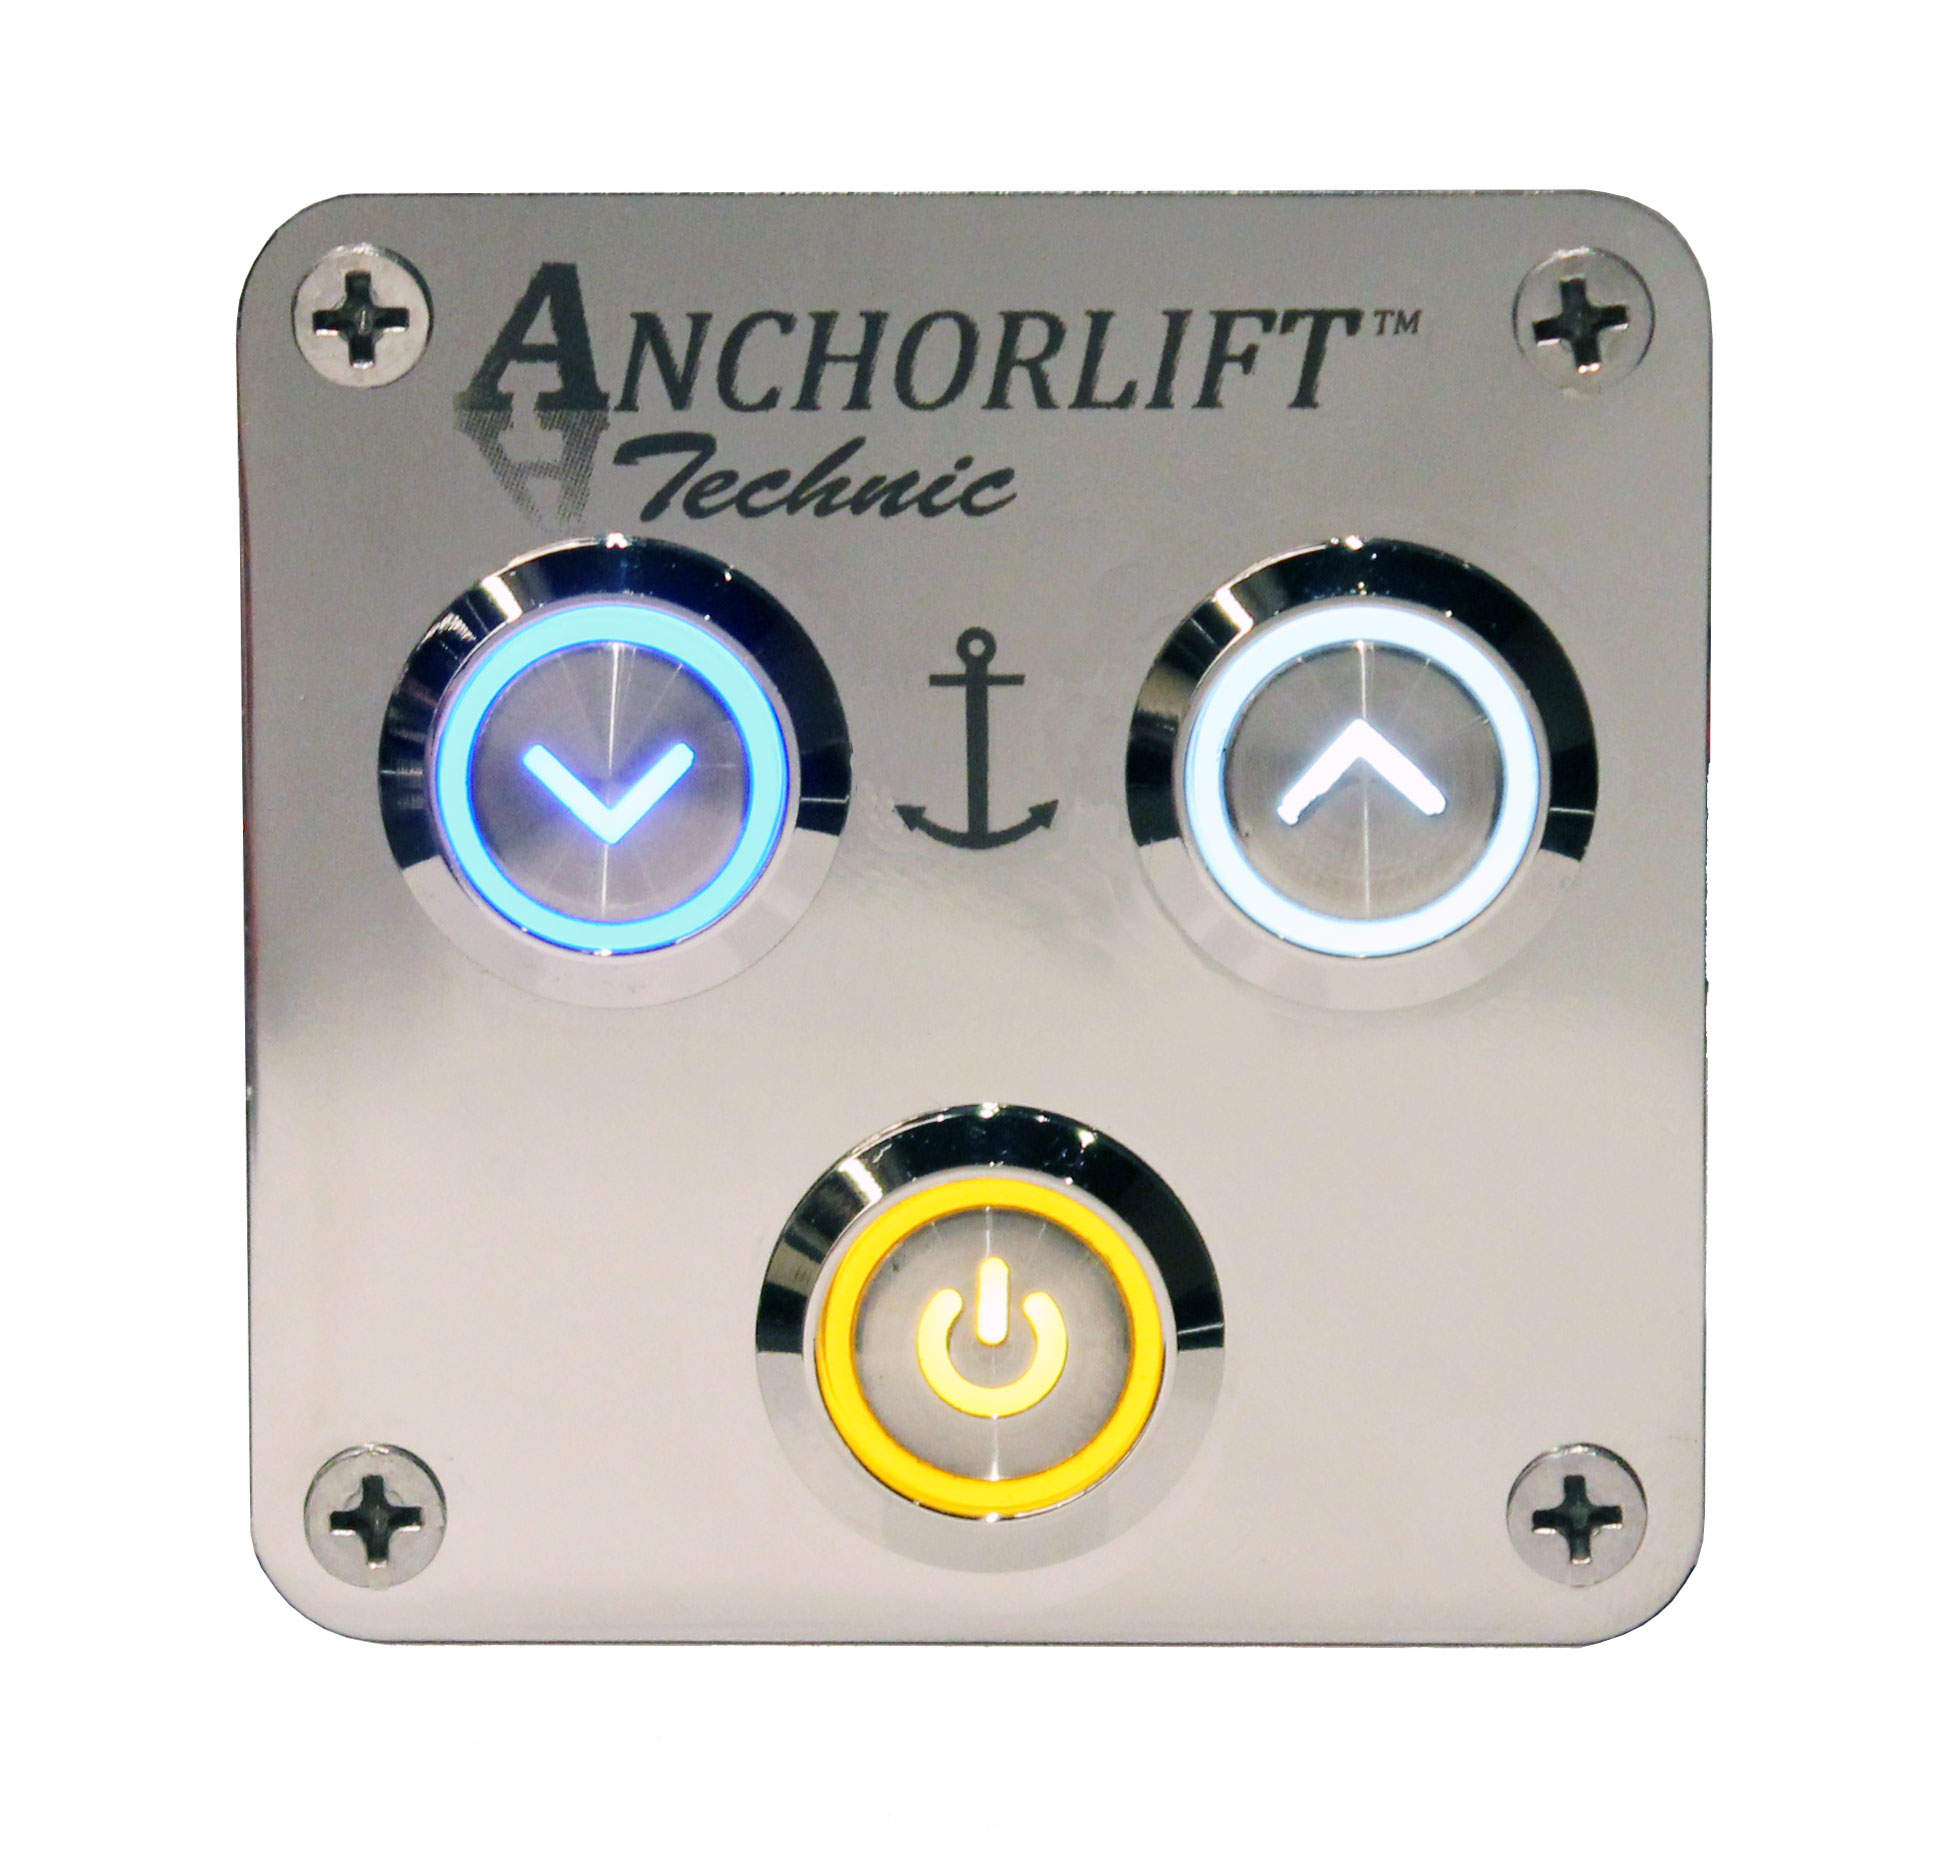 anchorlift control units and electrical components